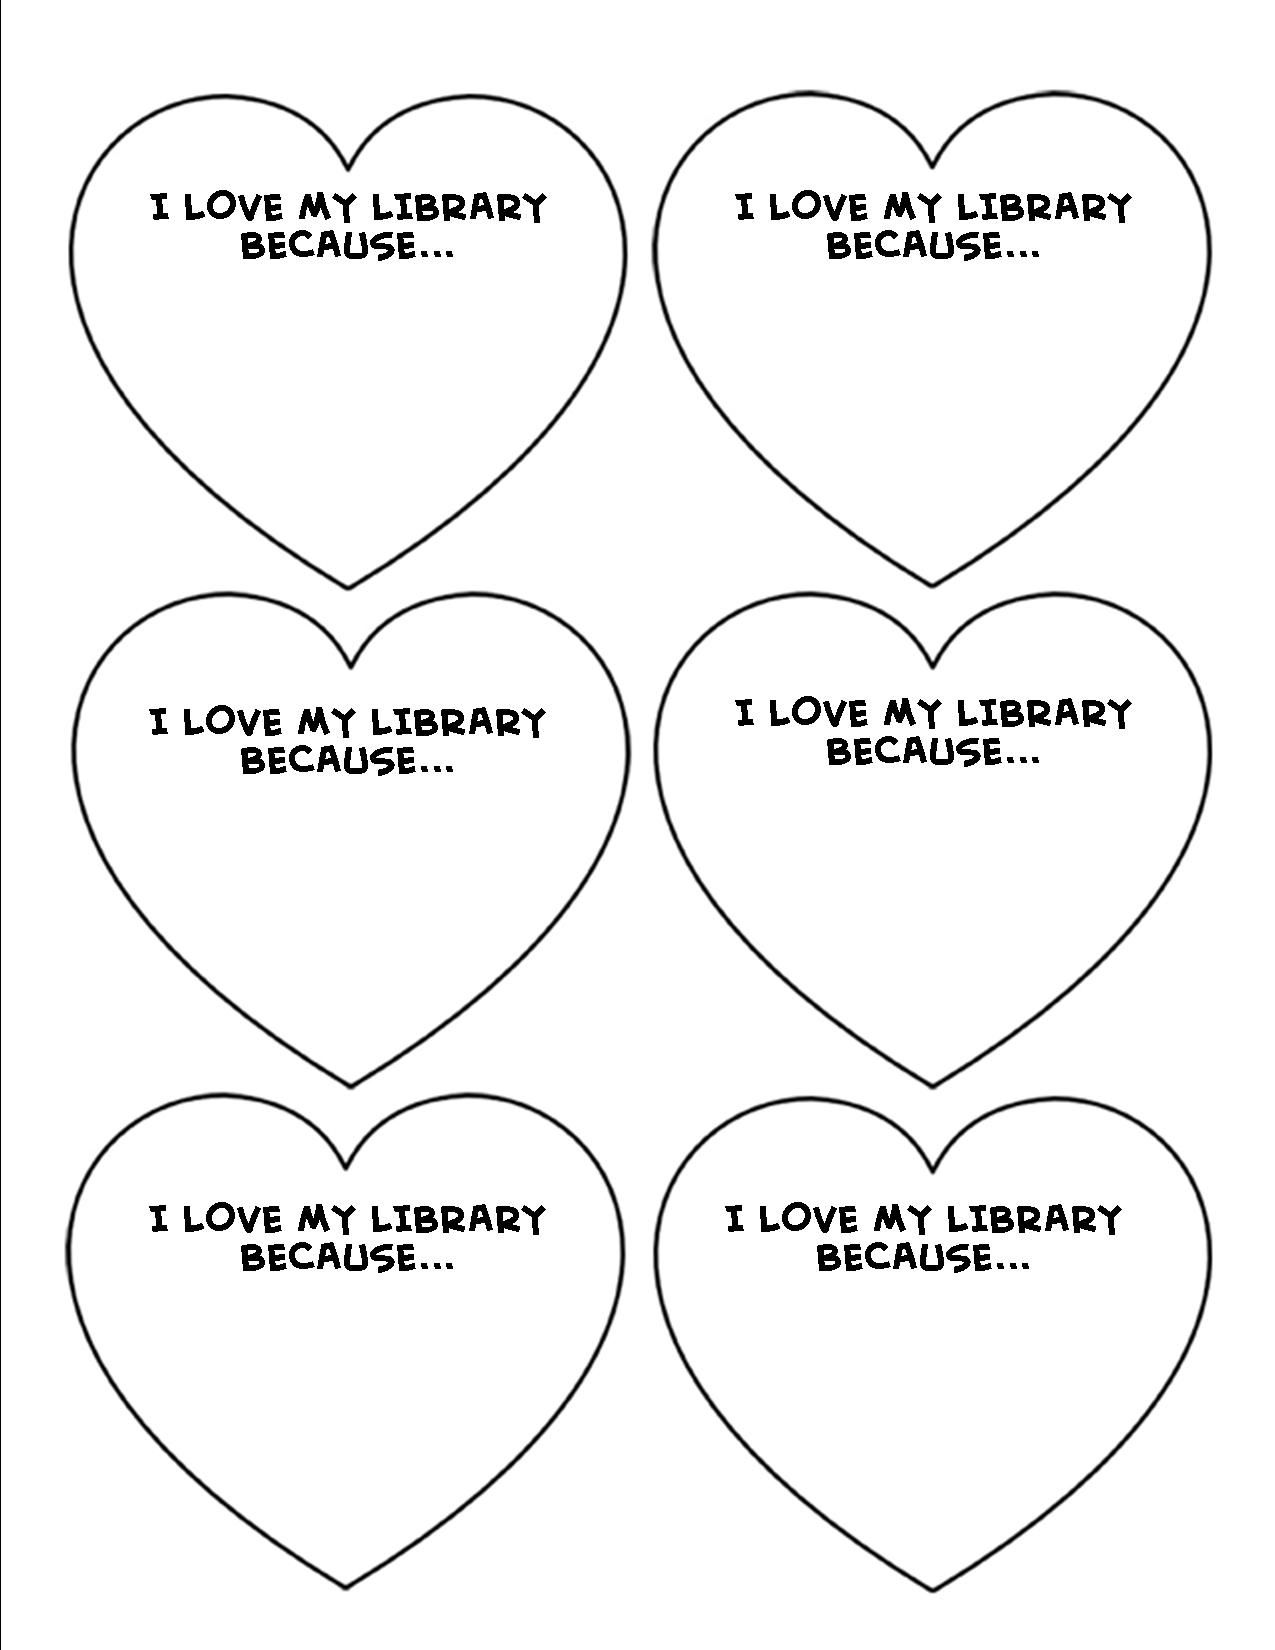 I Love My Library Because Template